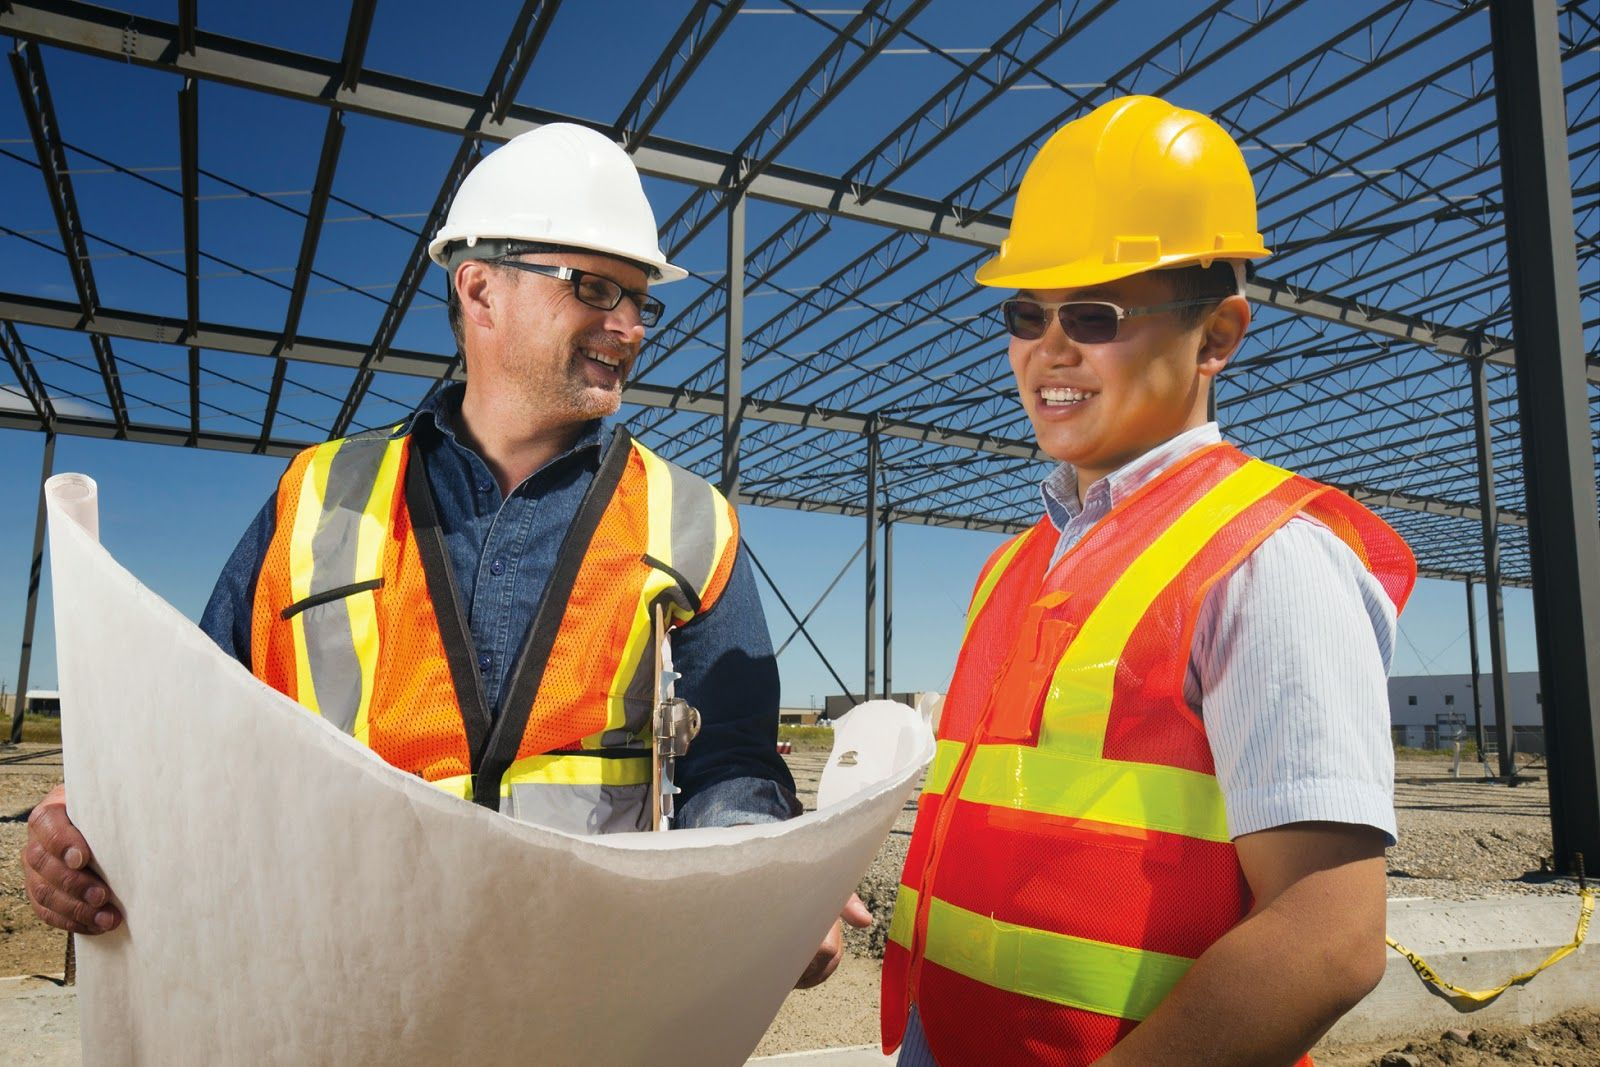 Bvoc in construction technology course eligibility